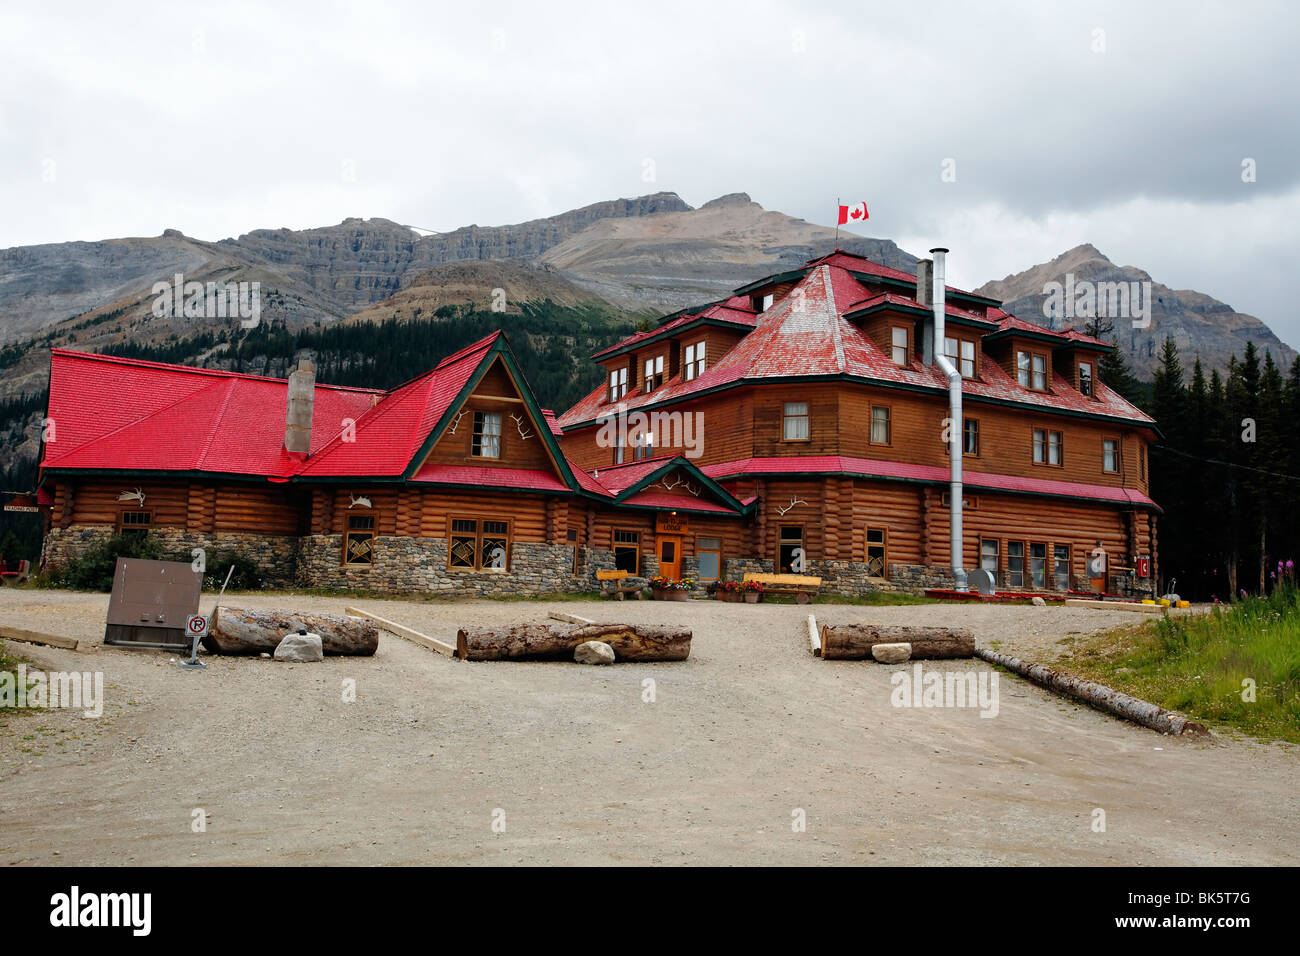 Low Angle View of a Timber Lodge, Num-Ti-Jah, Lodge, Alberta, Canada - Stock Image